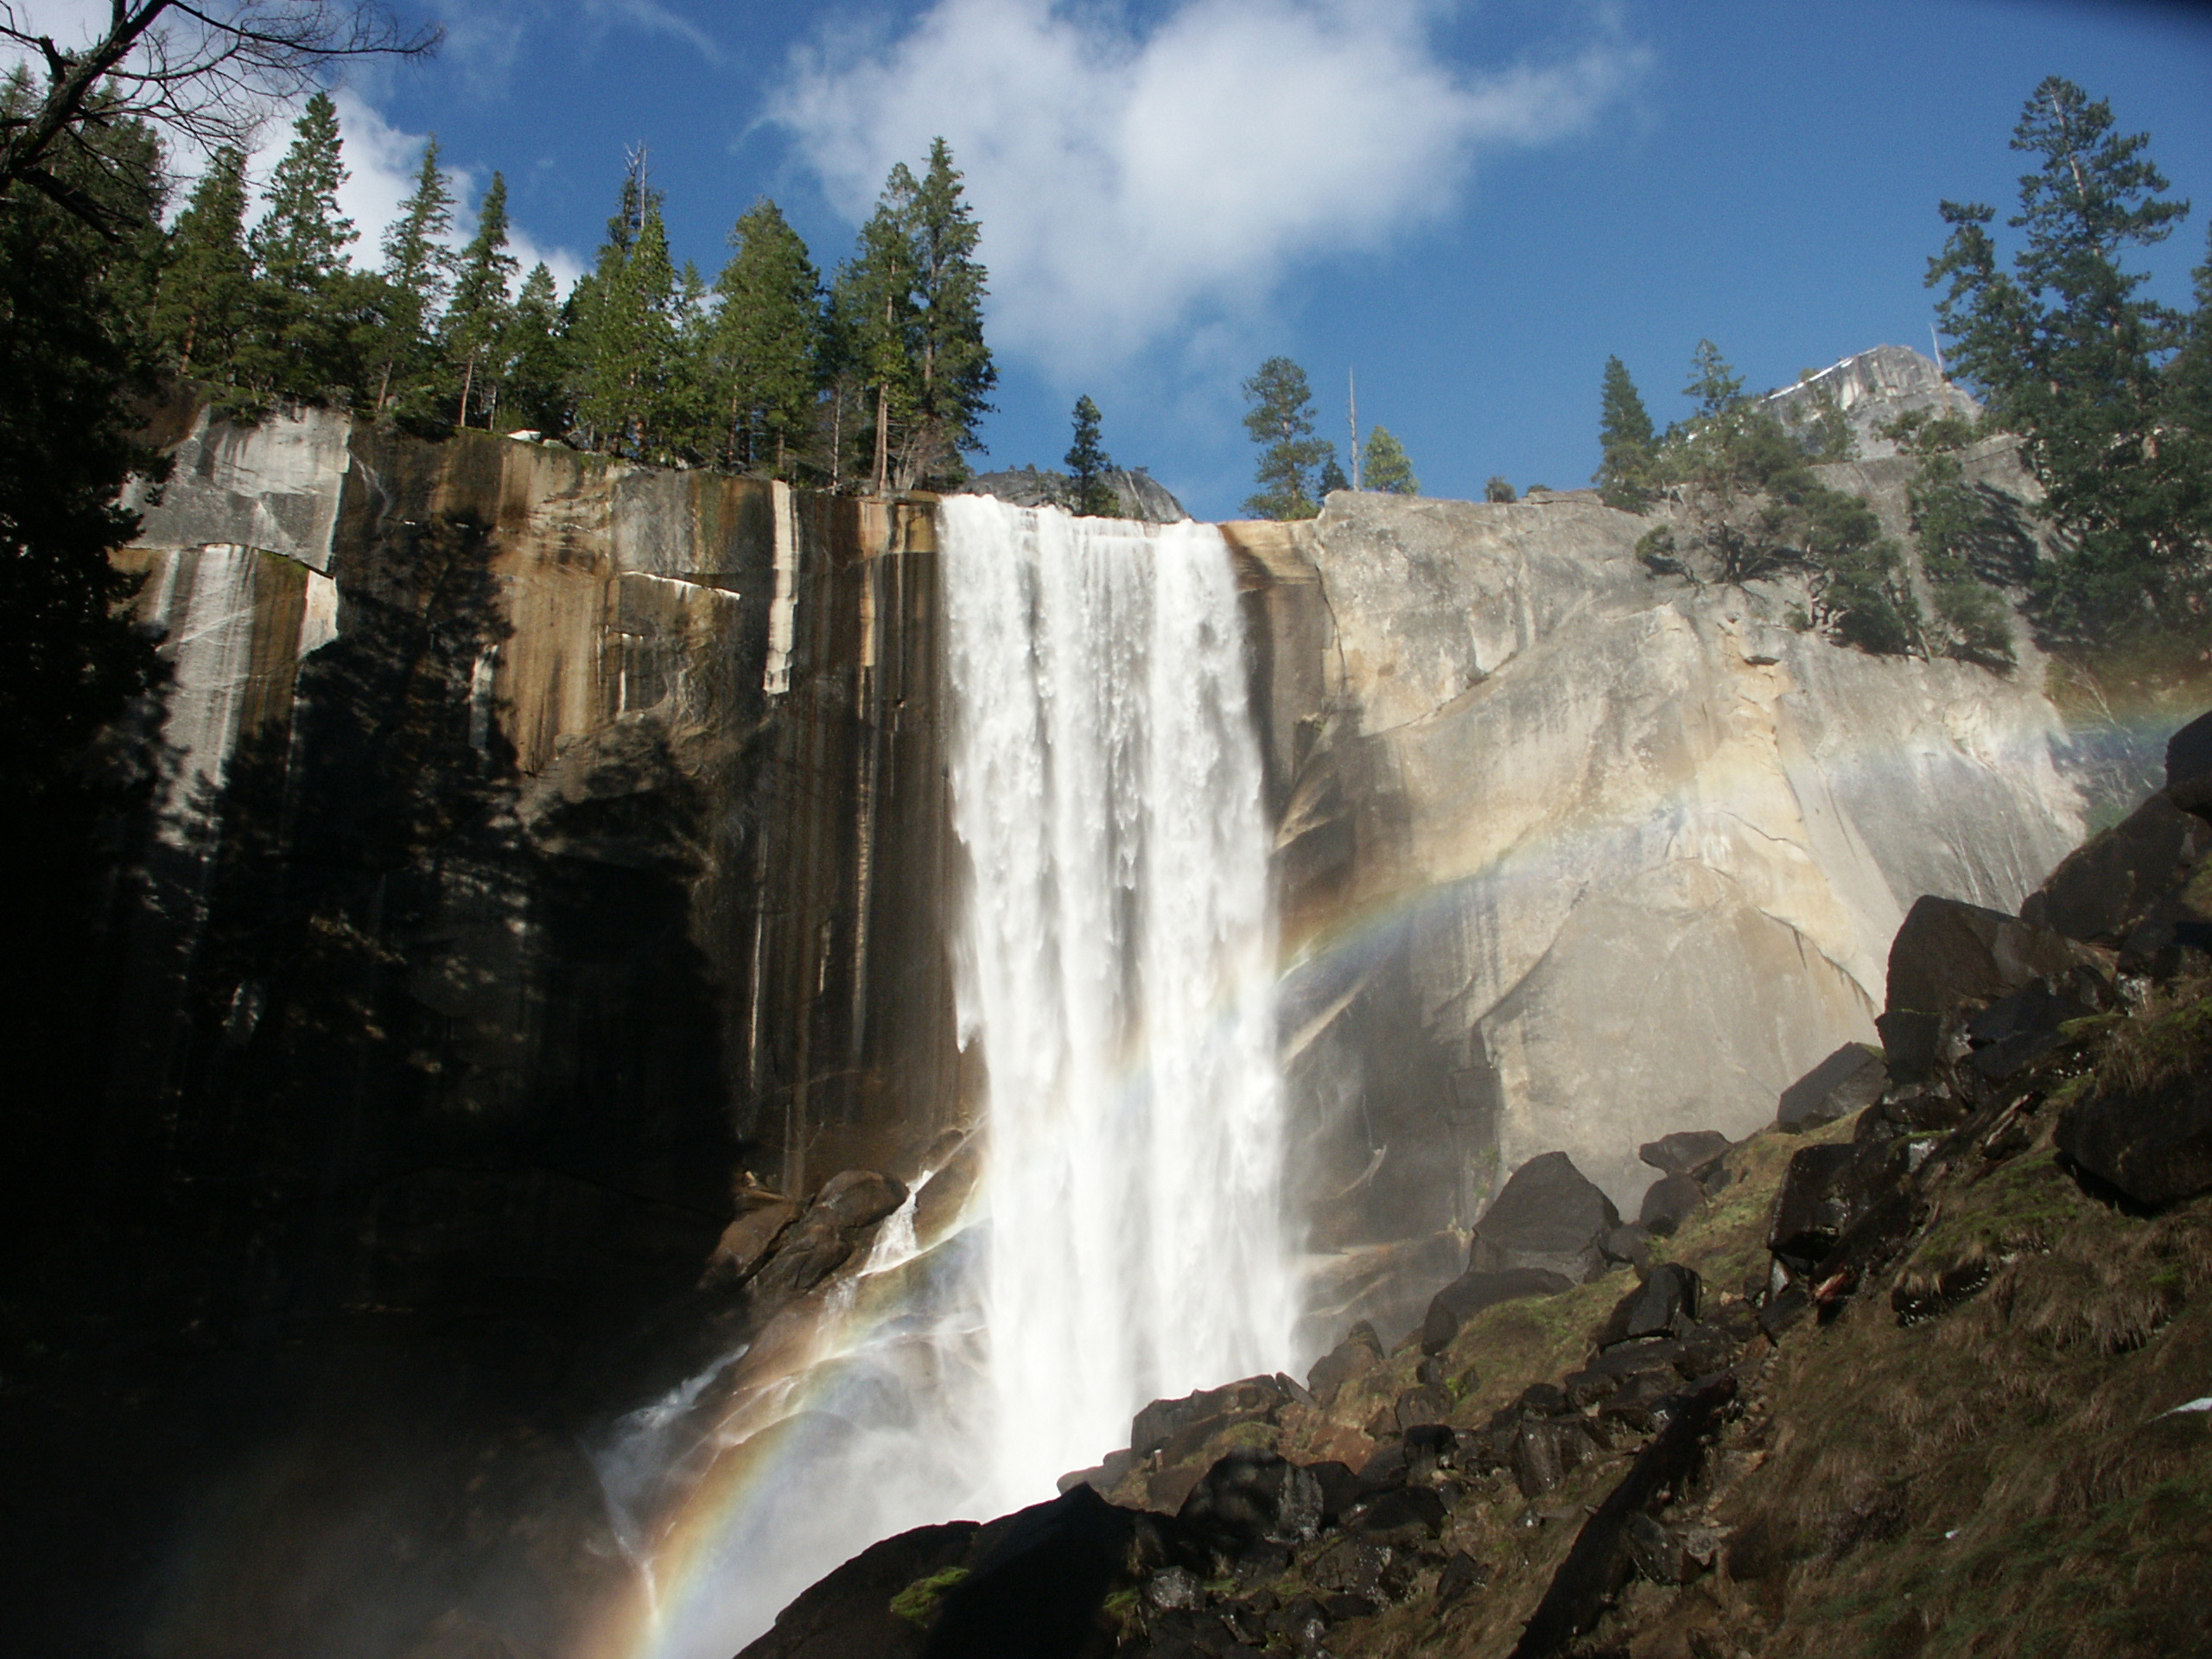 Hd Fall Wallpaper Free File Yosemite N P Vernal Falls Rainbow Jpg Wikimedia